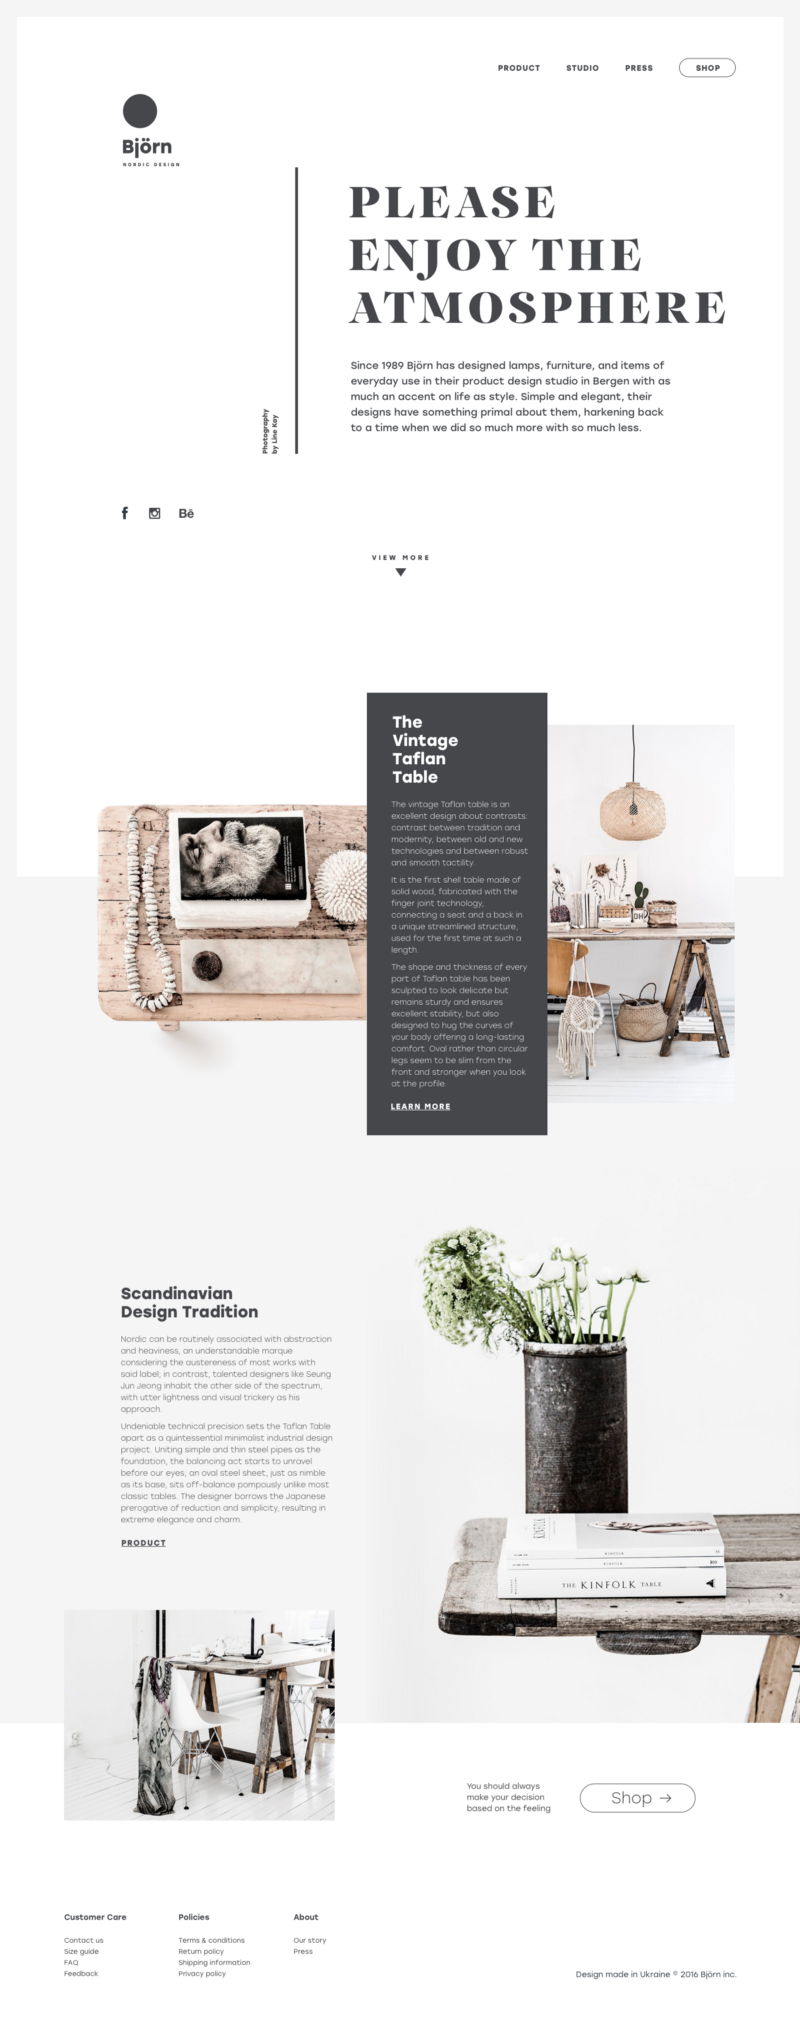 Web of life collection of creative web design concepts for Interieur websites